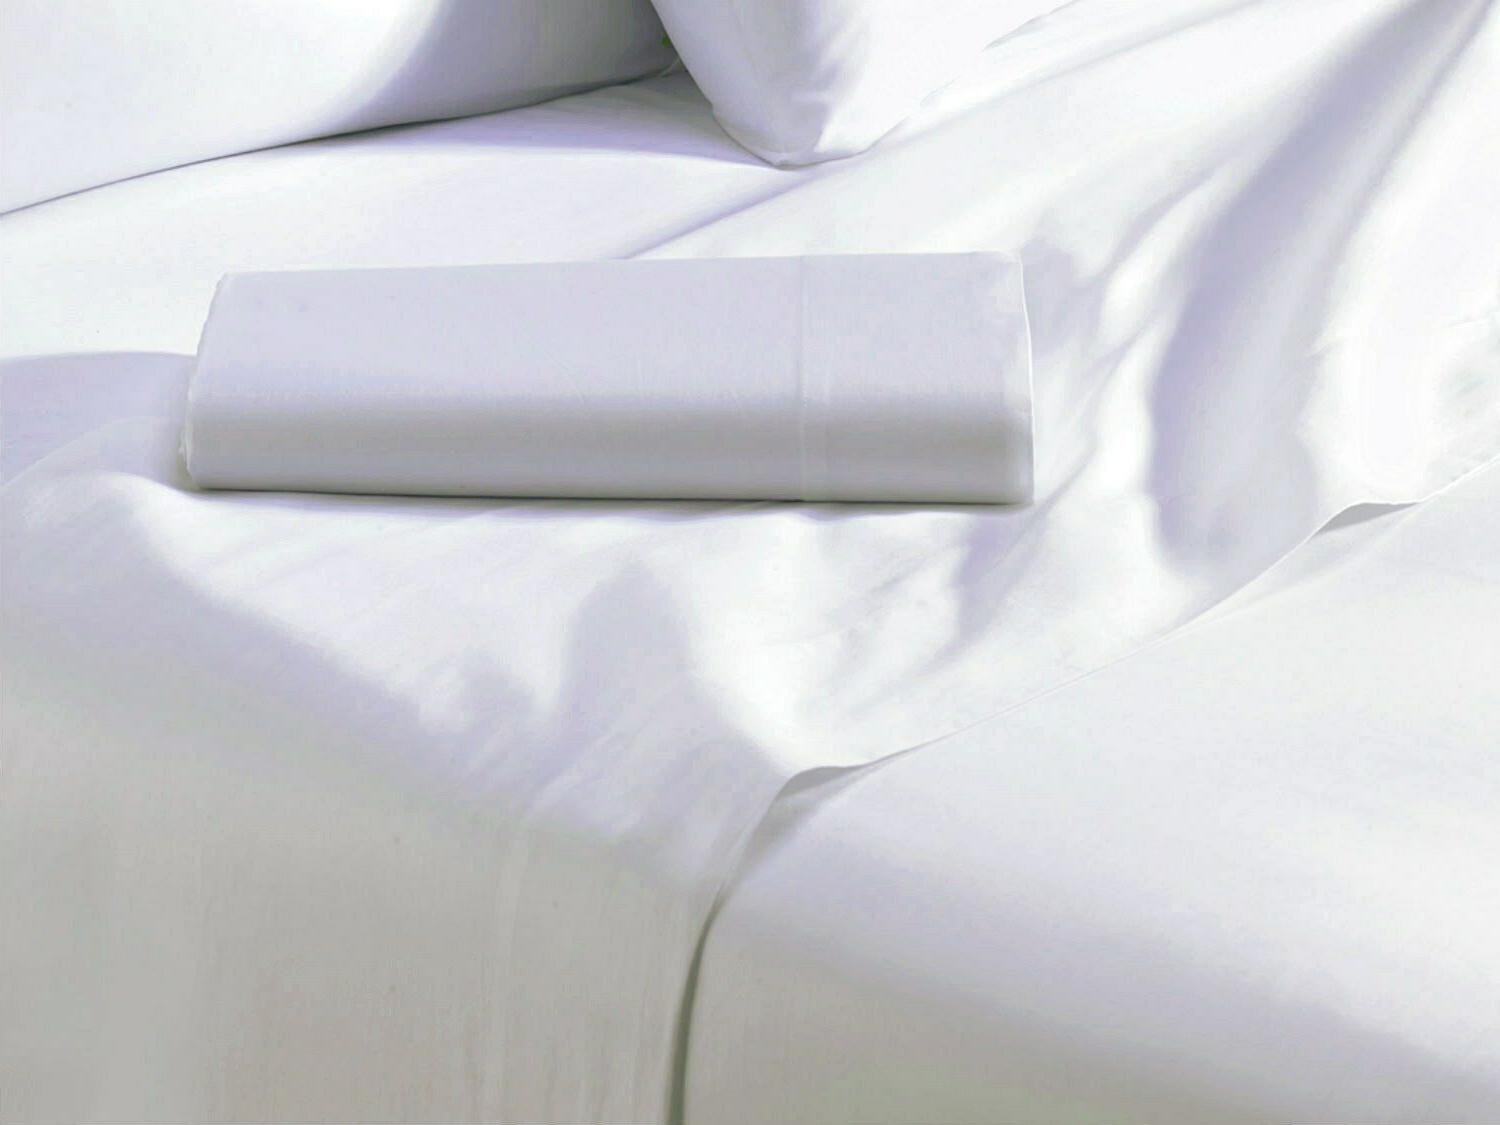 Soft Flat Sheets Top Bed Sheets 100% Cotton, Classic White,